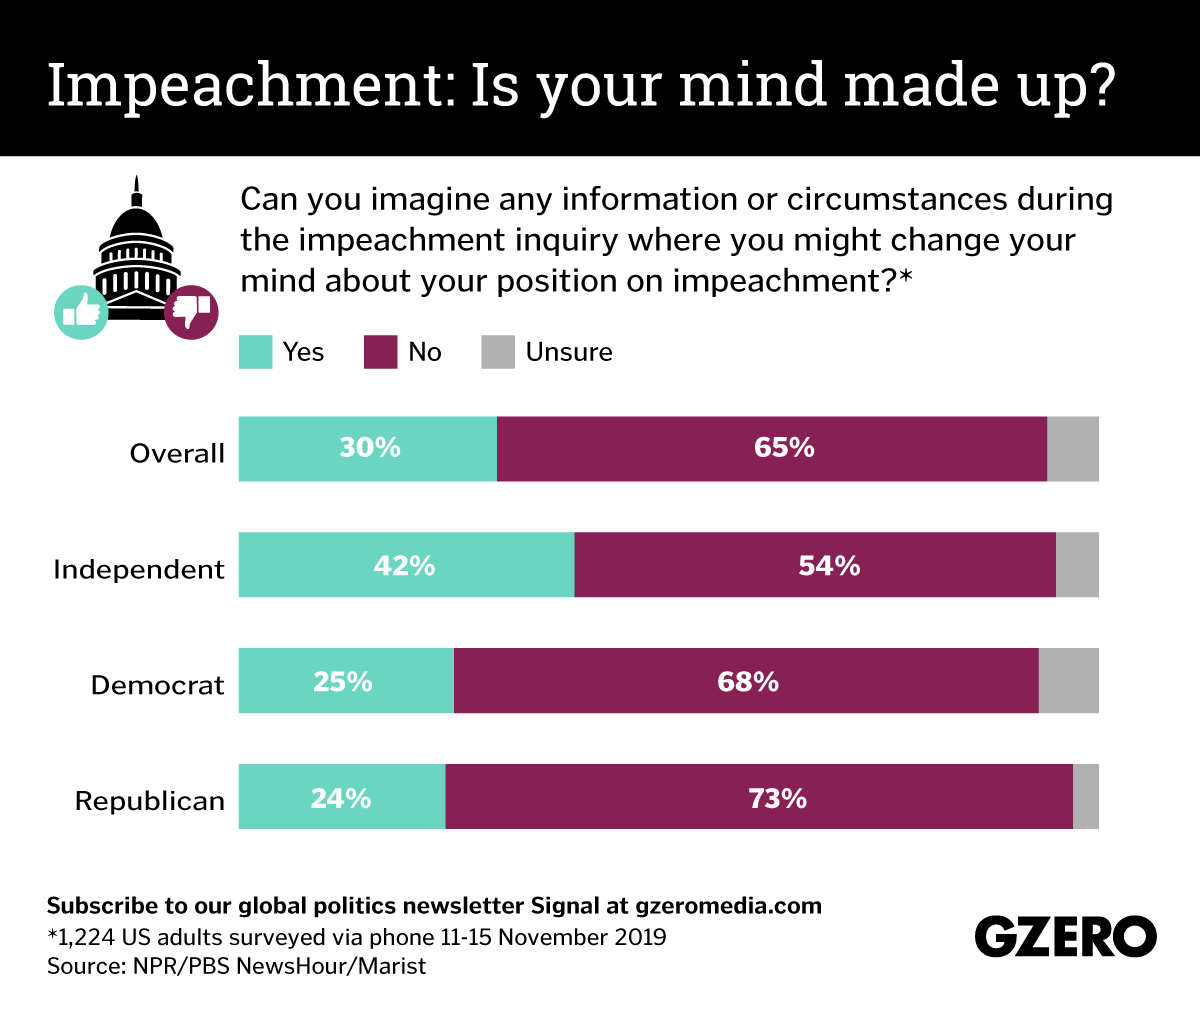 Graphic Truth: Is your mind made up on impeachment?